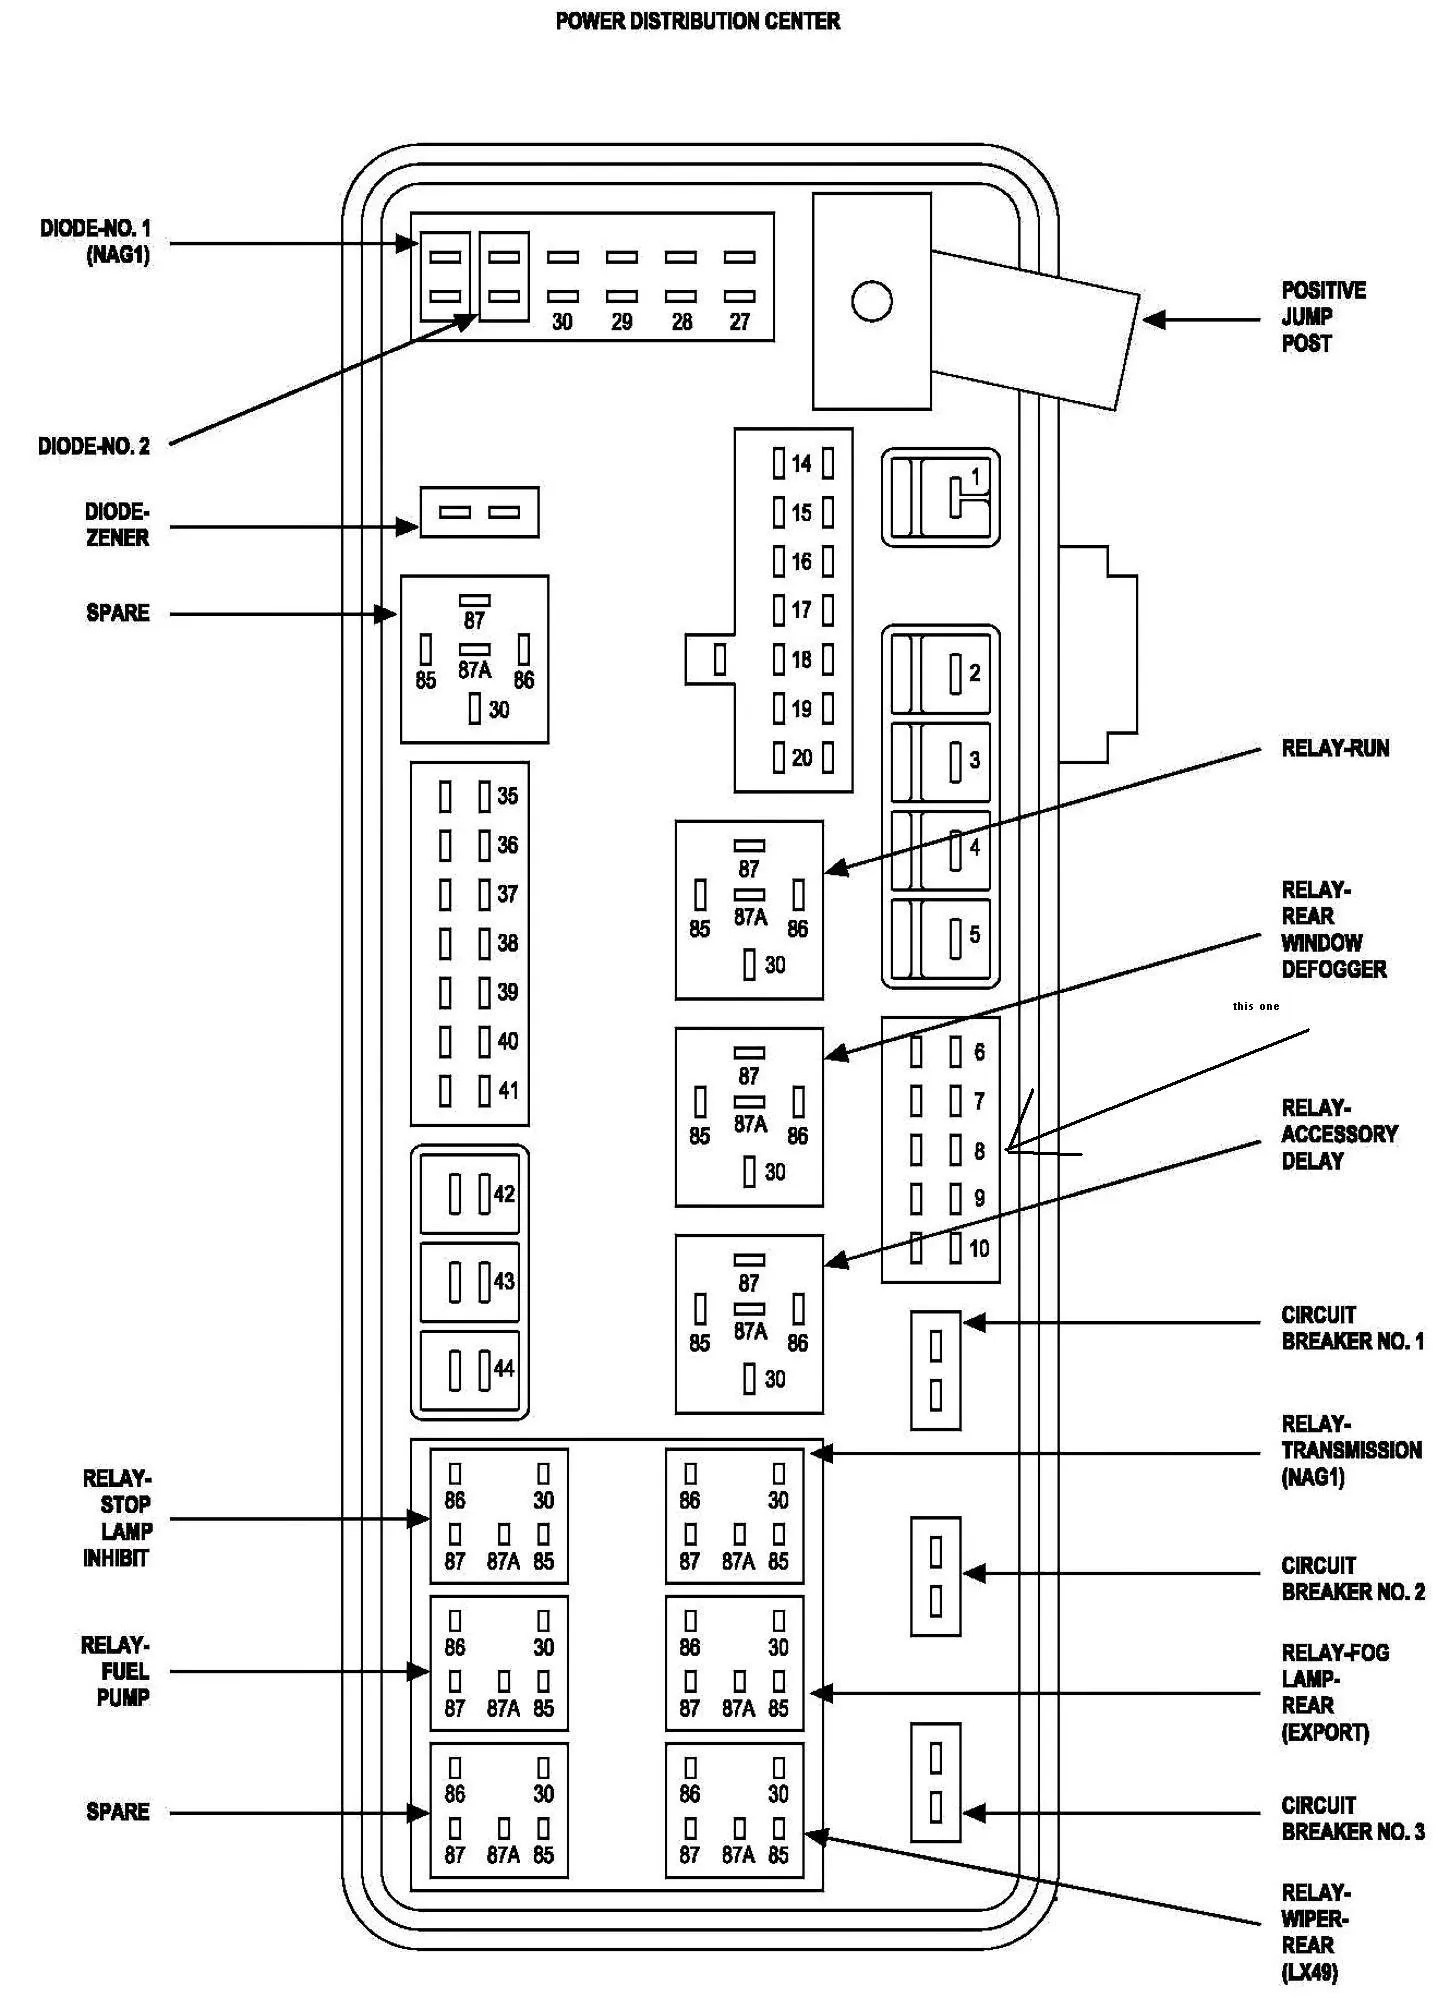 hight resolution of fuse box diagram for 2007 buick rainier schematic diagram2007 buick rainier wiring diagram wiring diagram 98